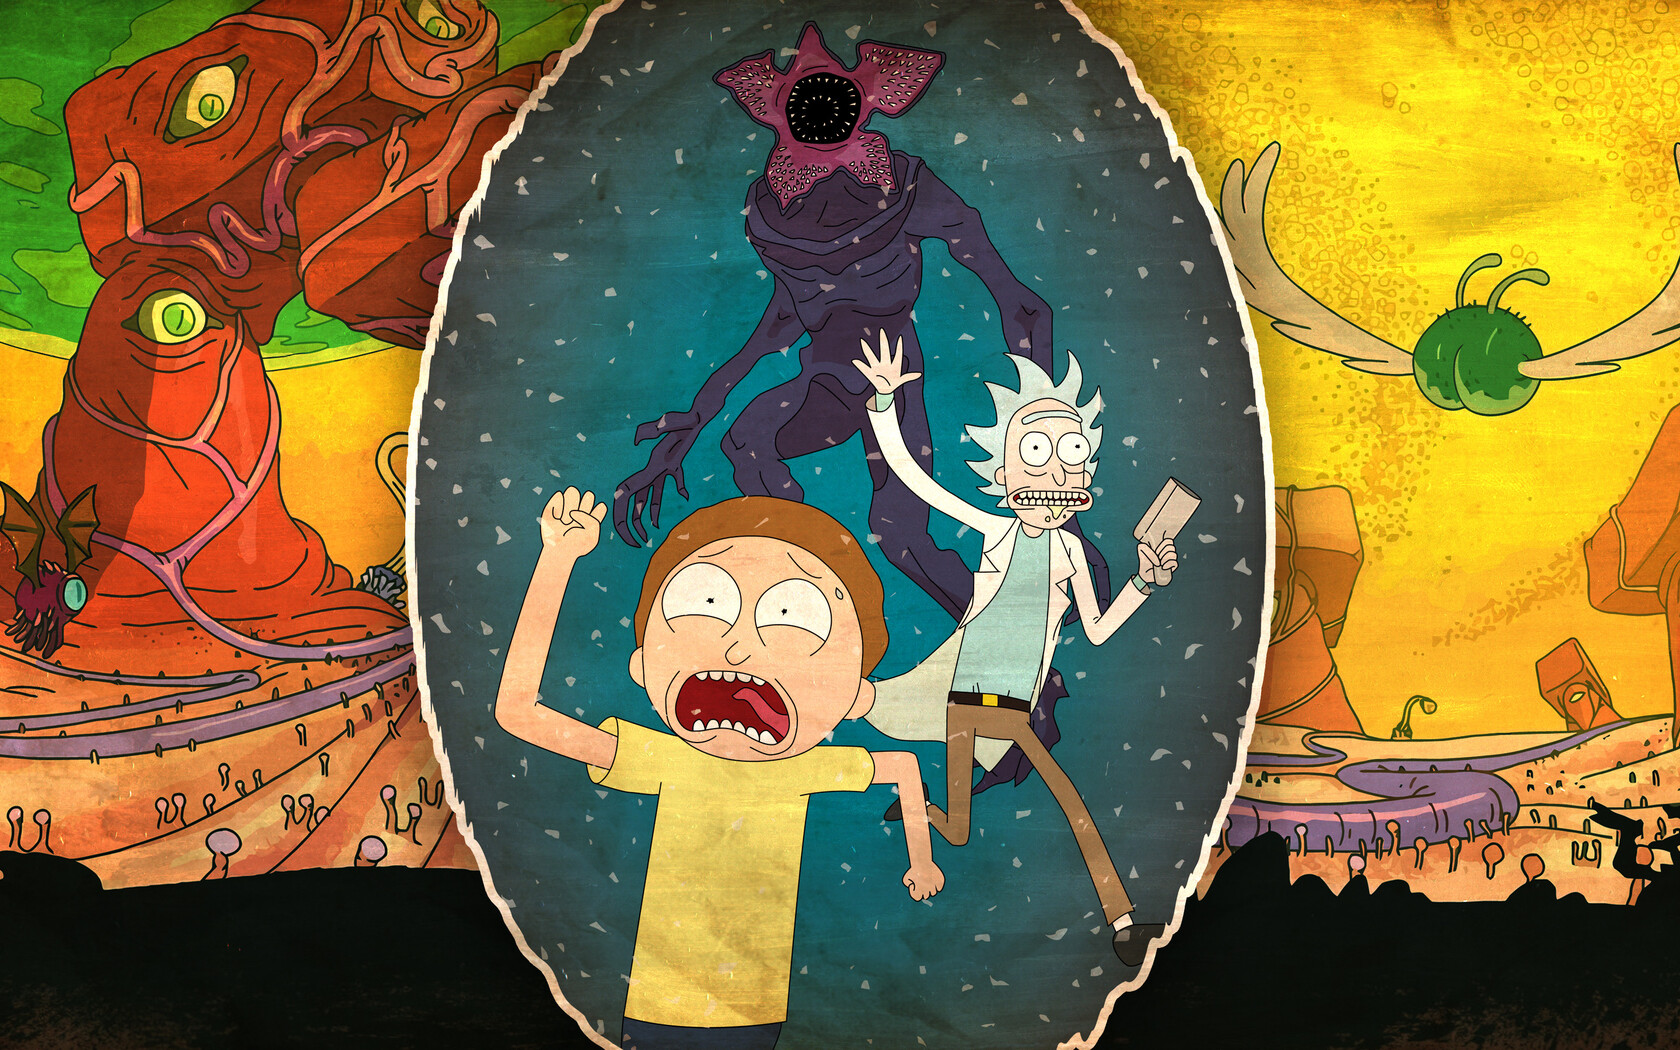 1680x1050 Rick And Morty 4k 1680x1050 Resolution Hd 4k Wallpapers